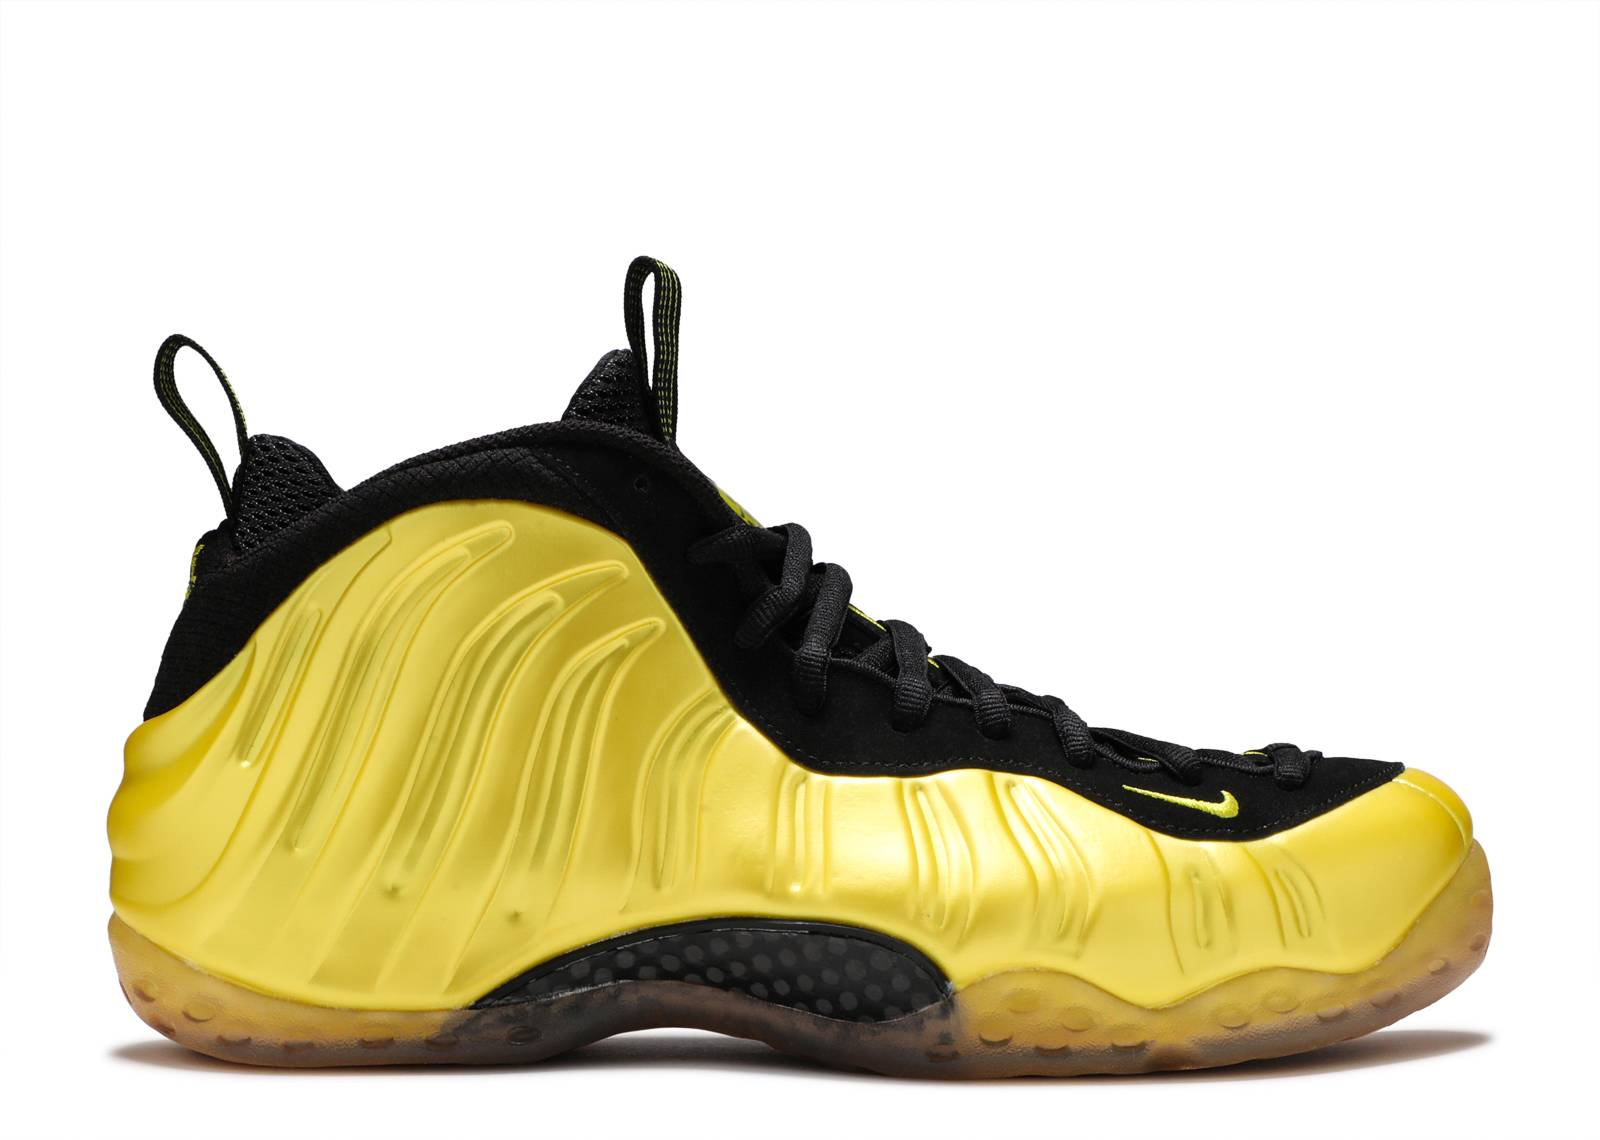 b4d17d5caf6 Air Foamposite One